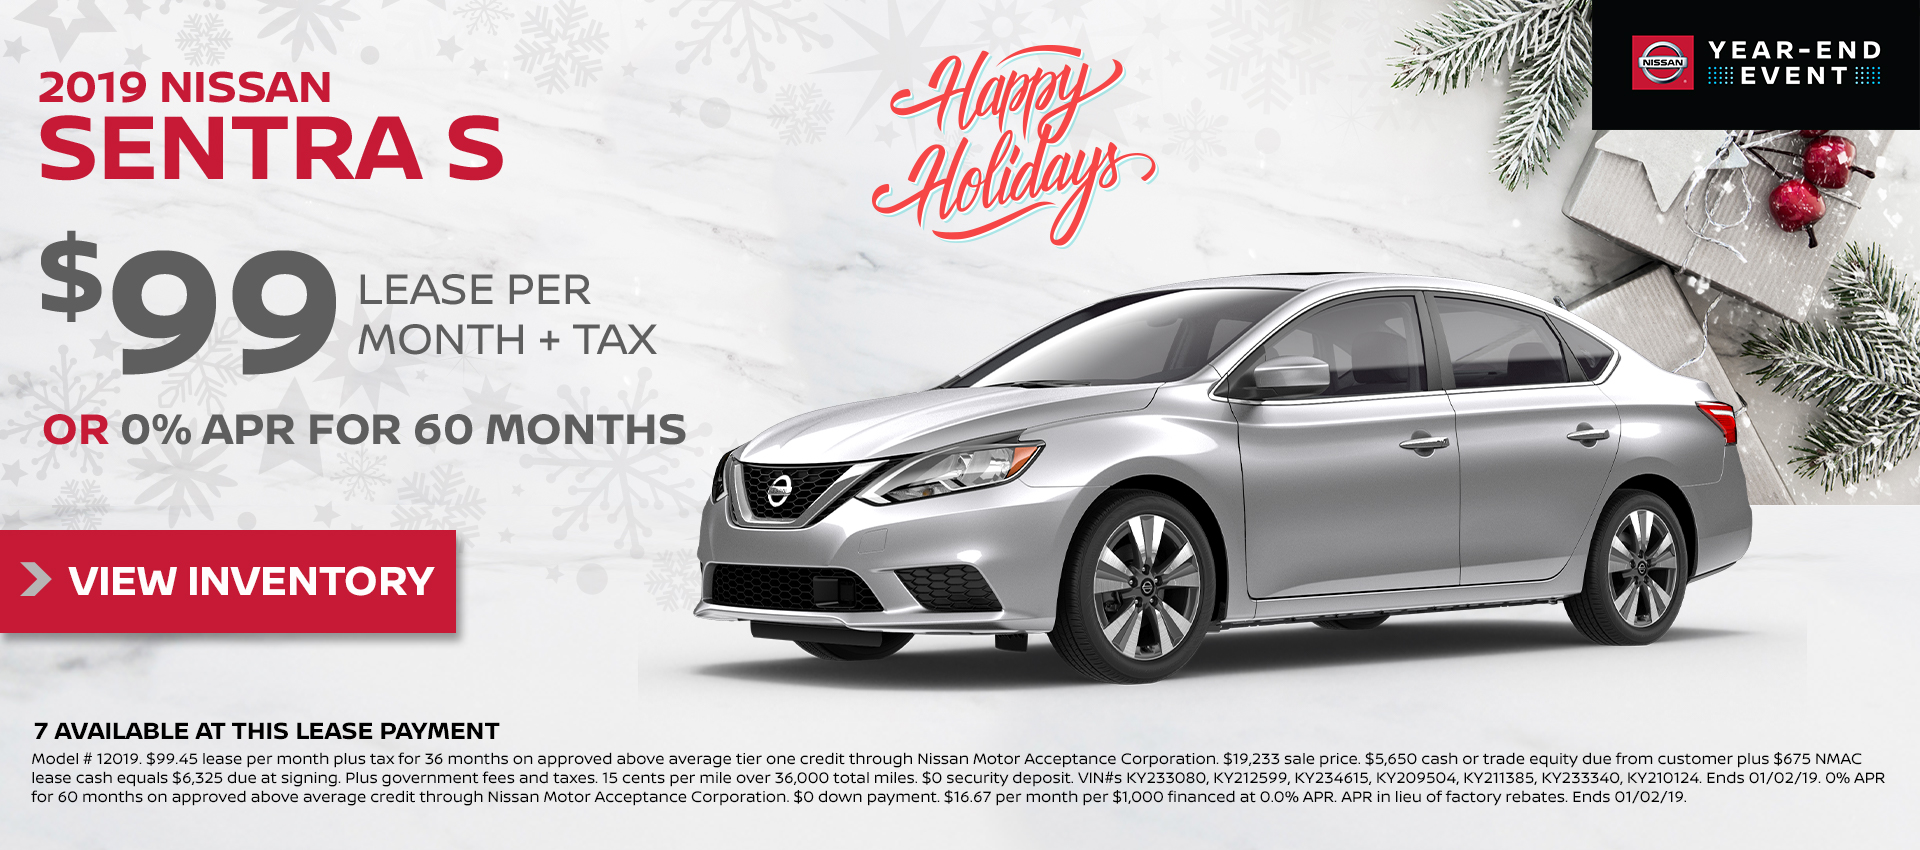 Mossy Nissan - Sentra $99 Lease HP